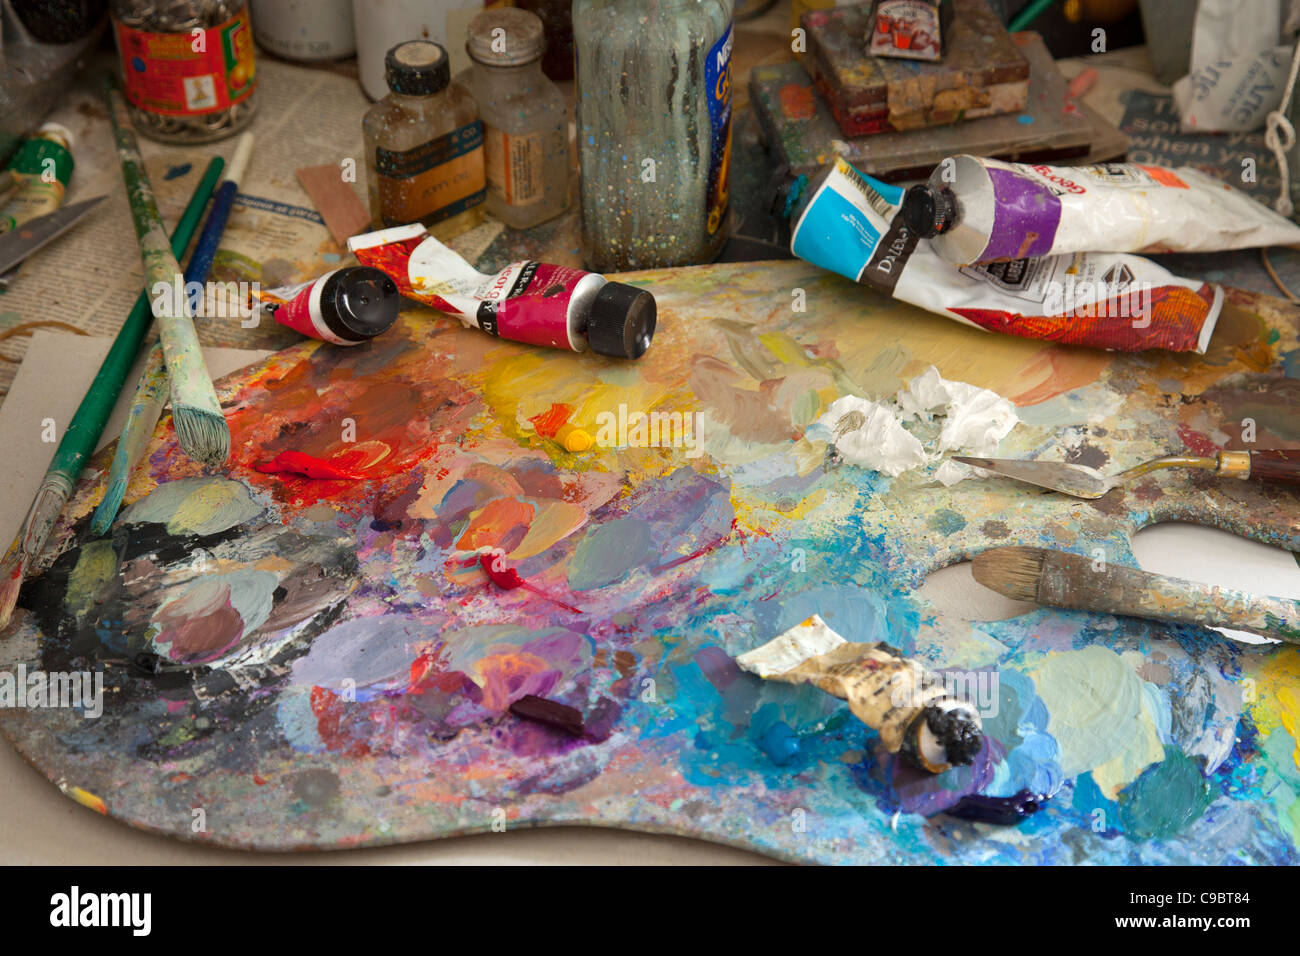 colorful artists Paint oil palette with brushes, knife, spatula, tube oils and jars. - Stock Image